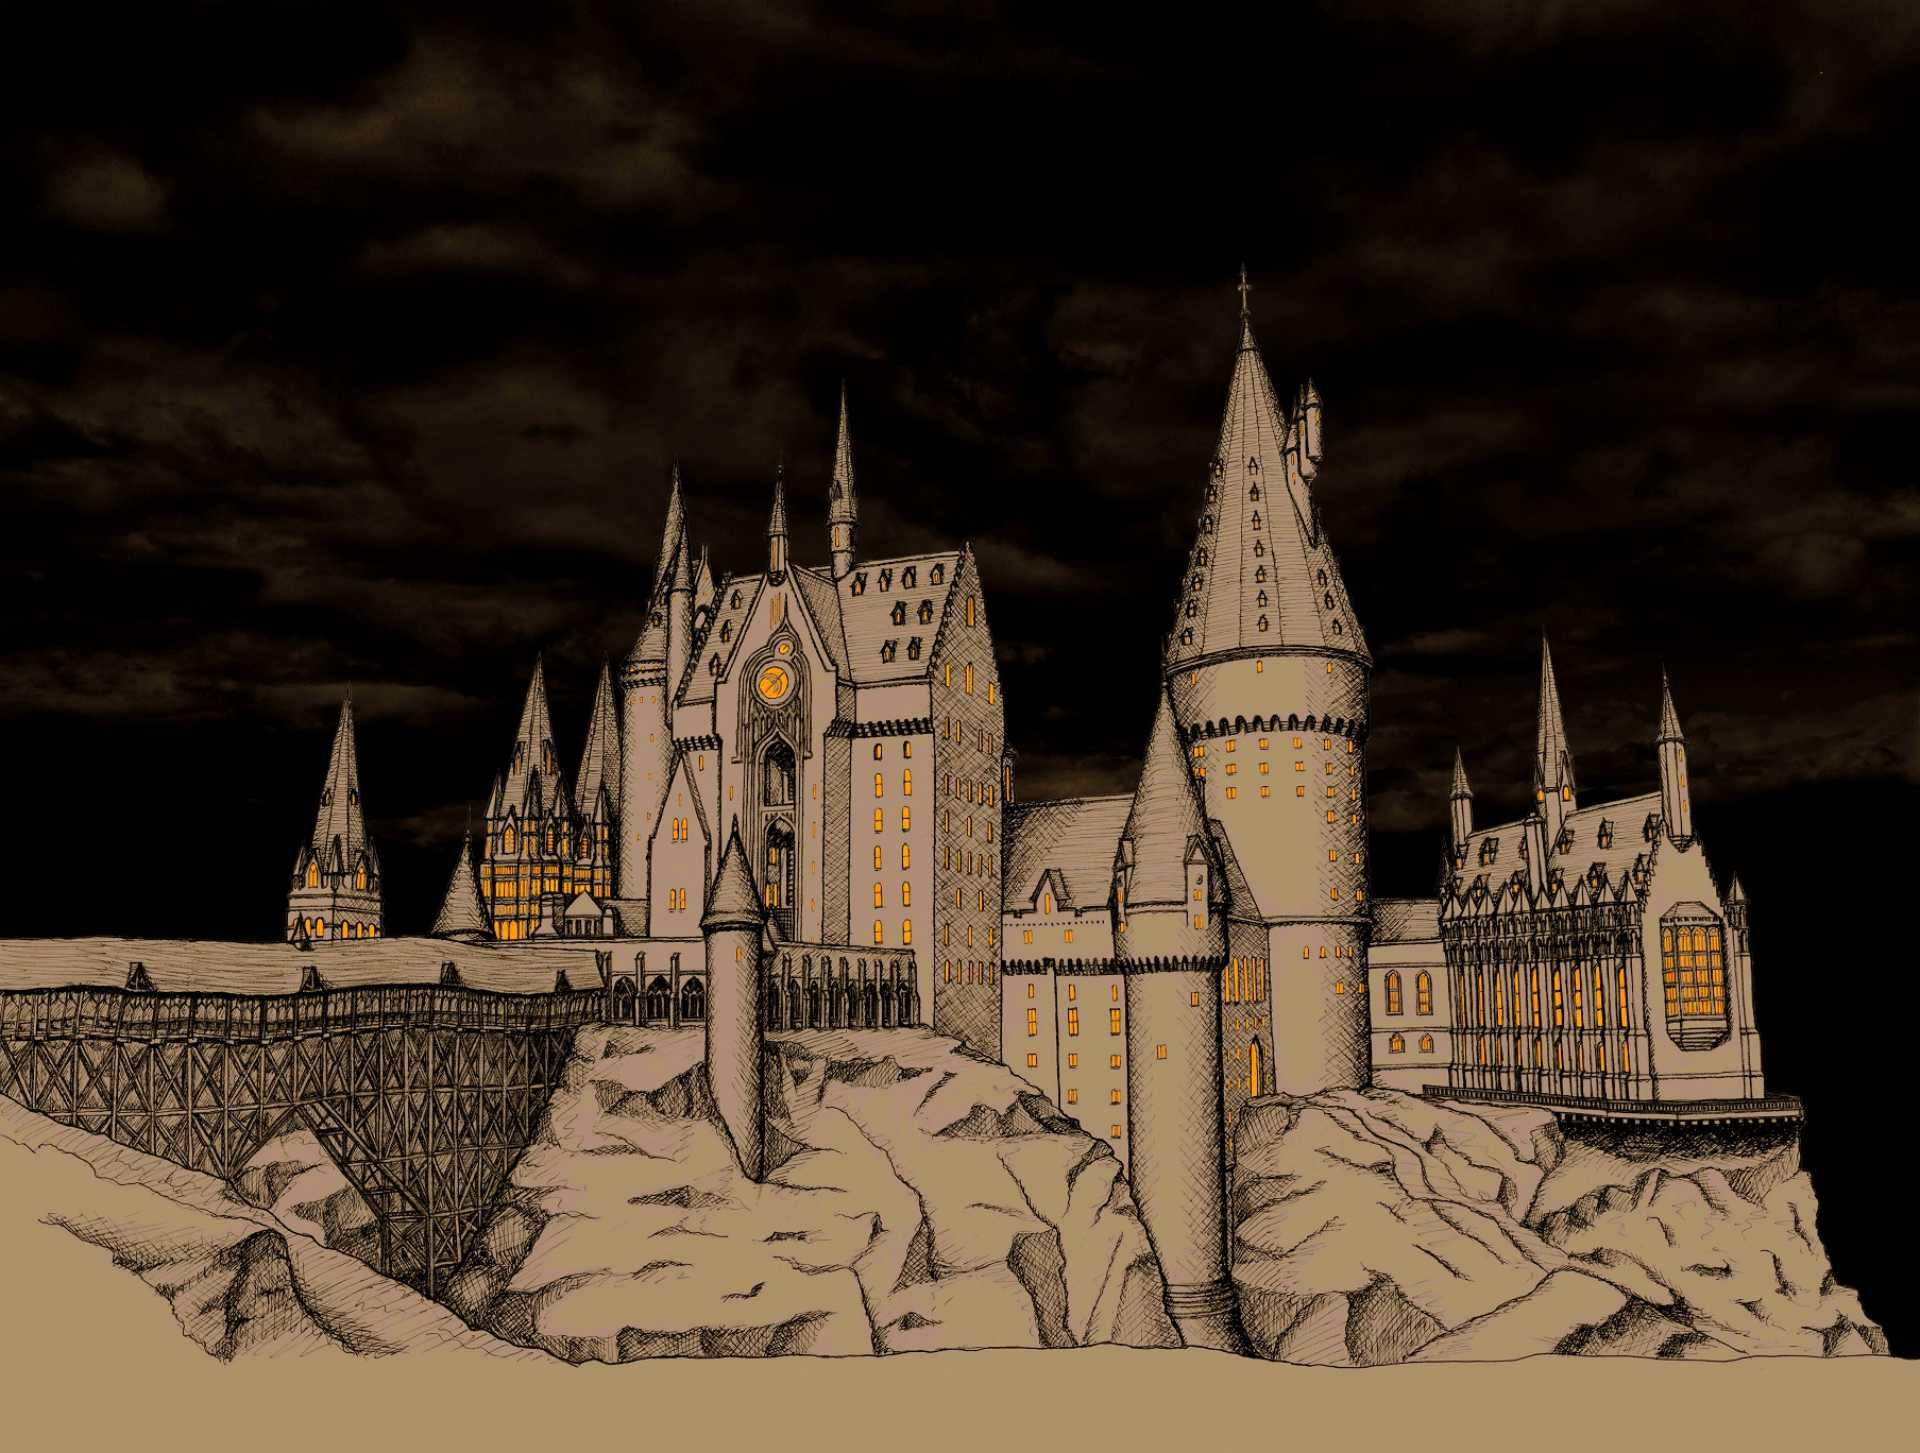 The Architecture of Hogwarts Castle - Part Two